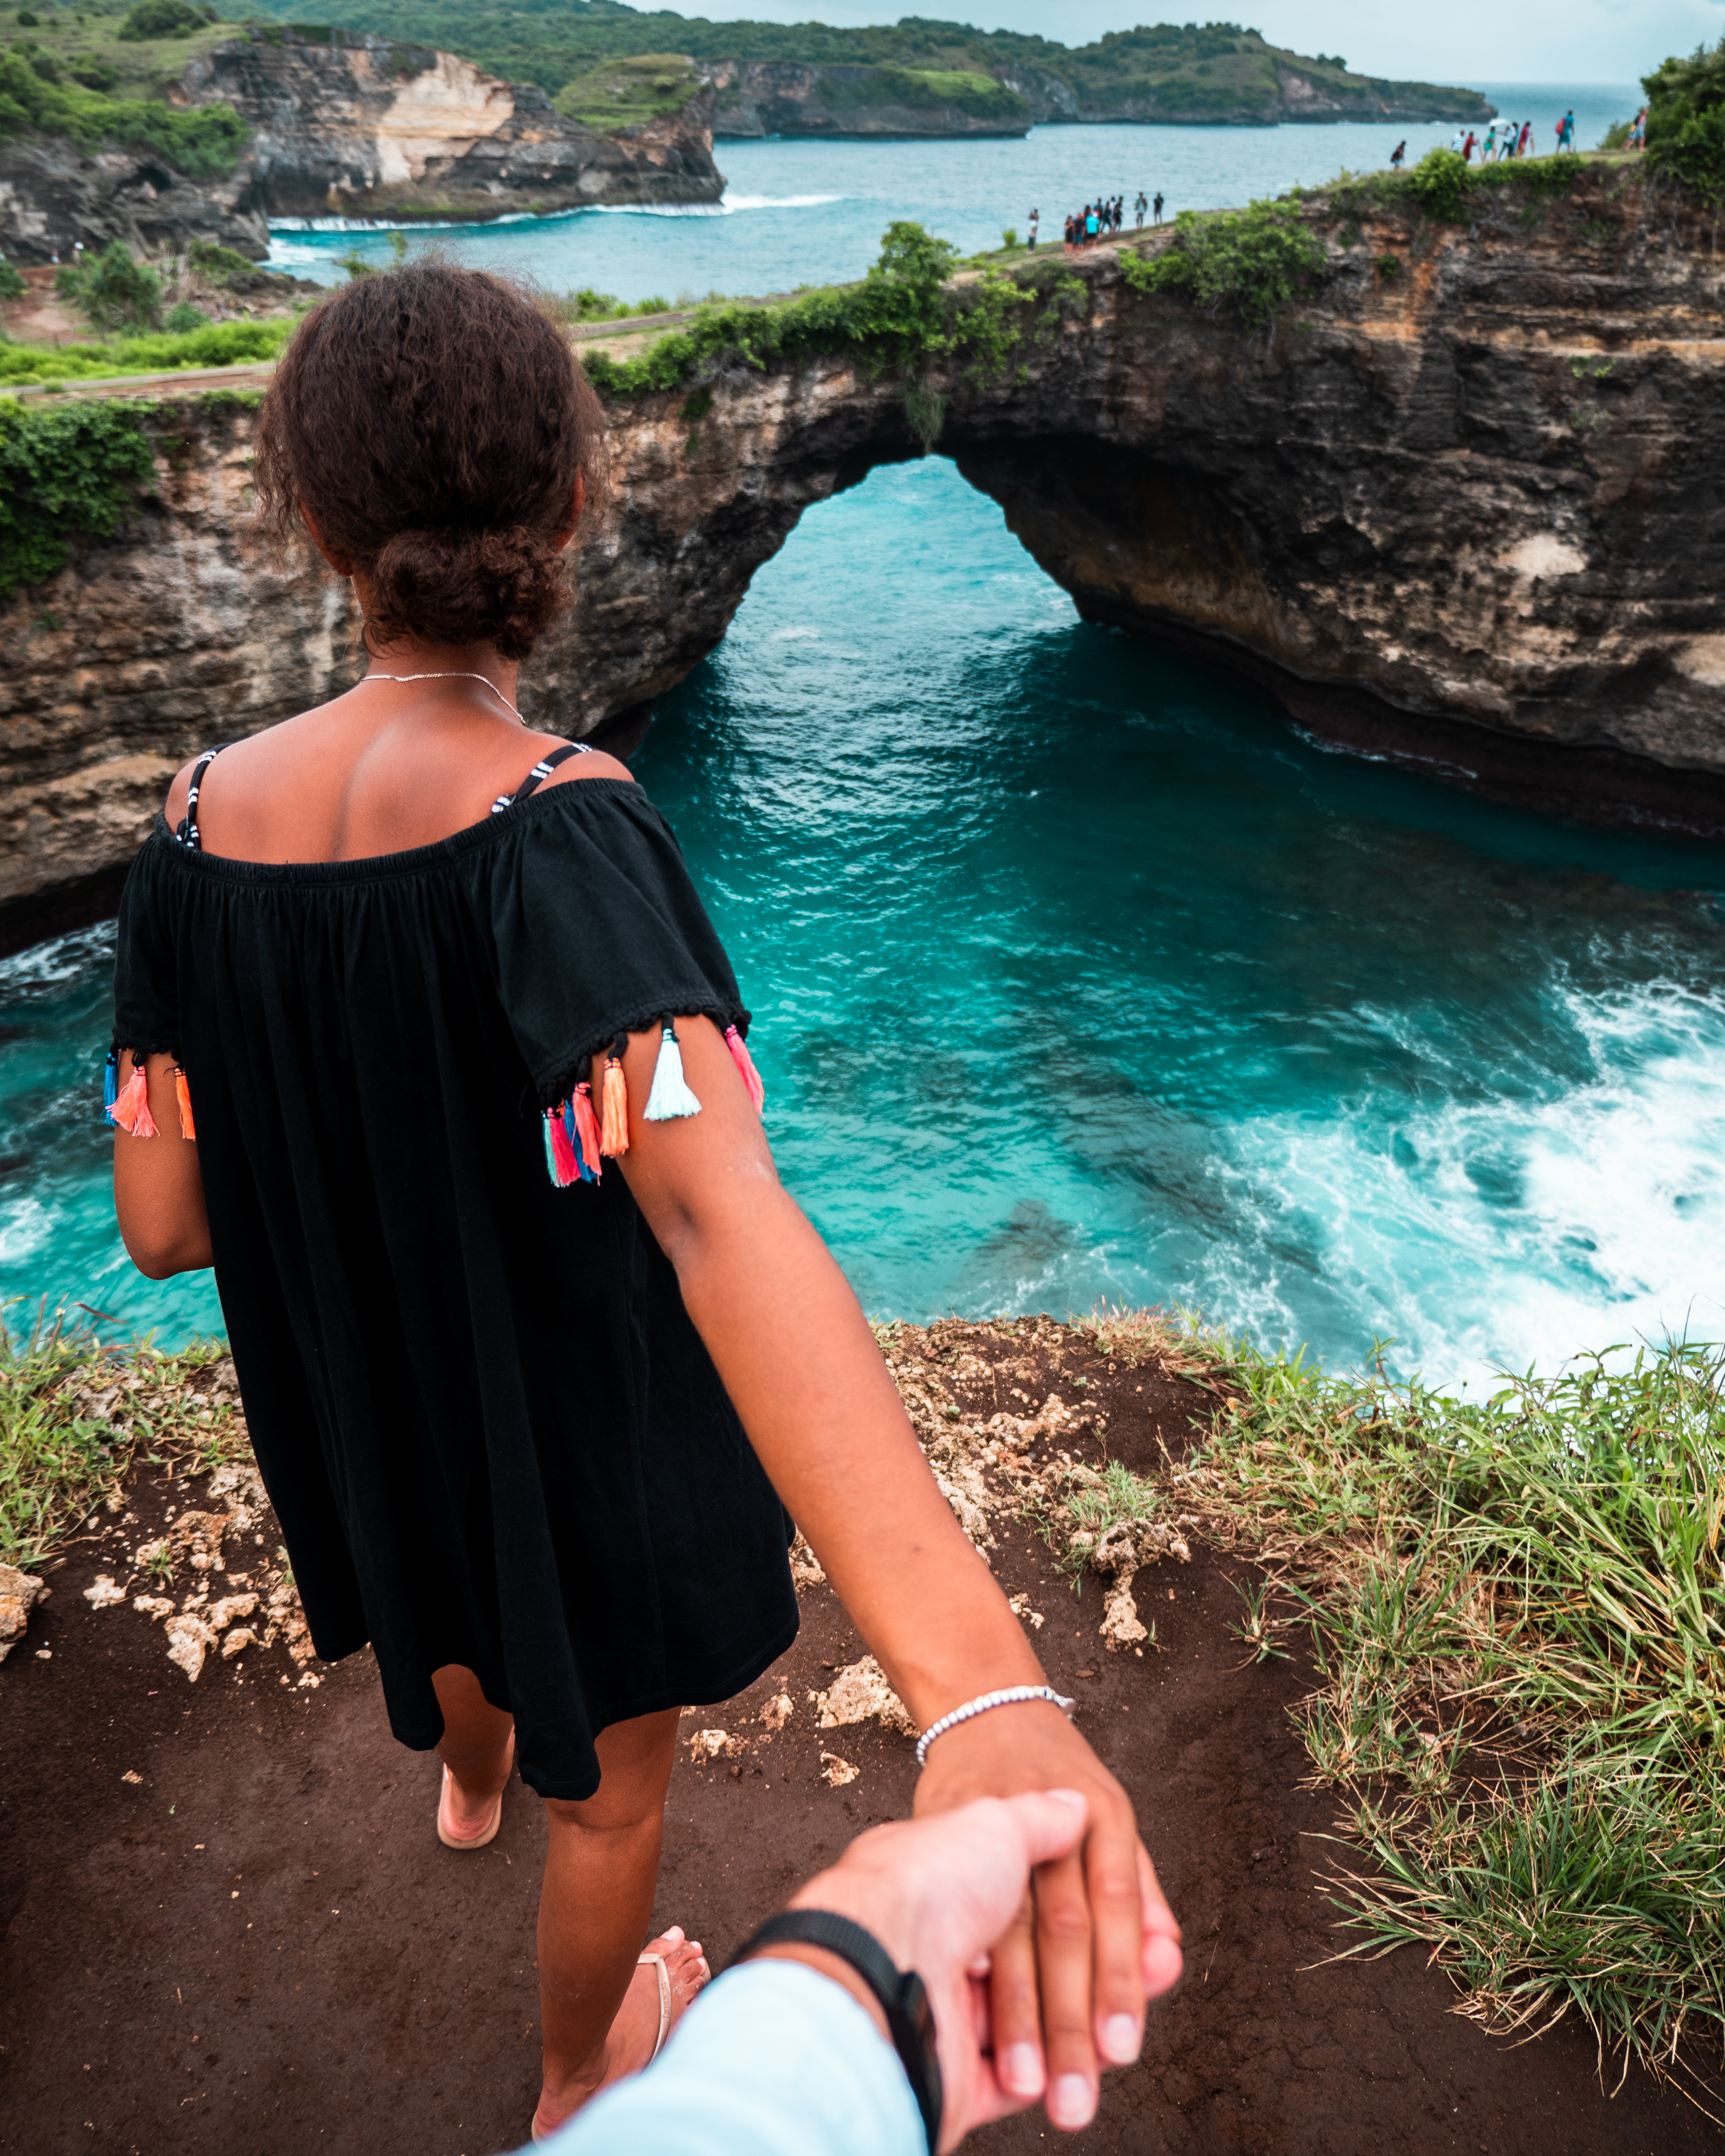 Person Holdings Woman Hand in Front of Body of Water